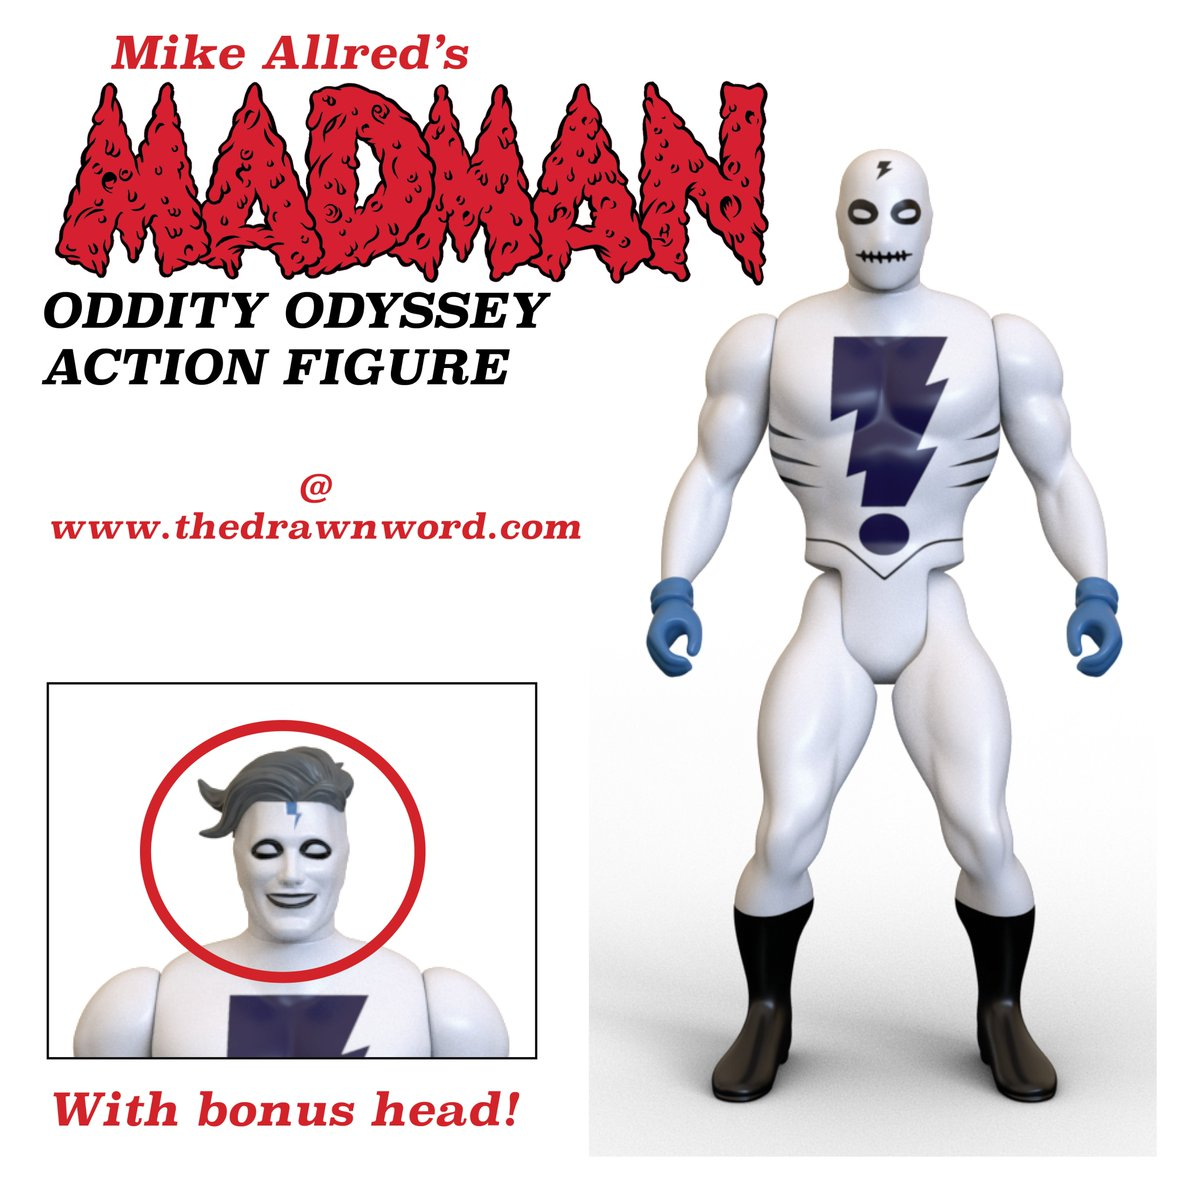 PLEASE SHARE! The Madman Oddity Odyssey figure is the FEATURED project in comics today on @Kickstarter!